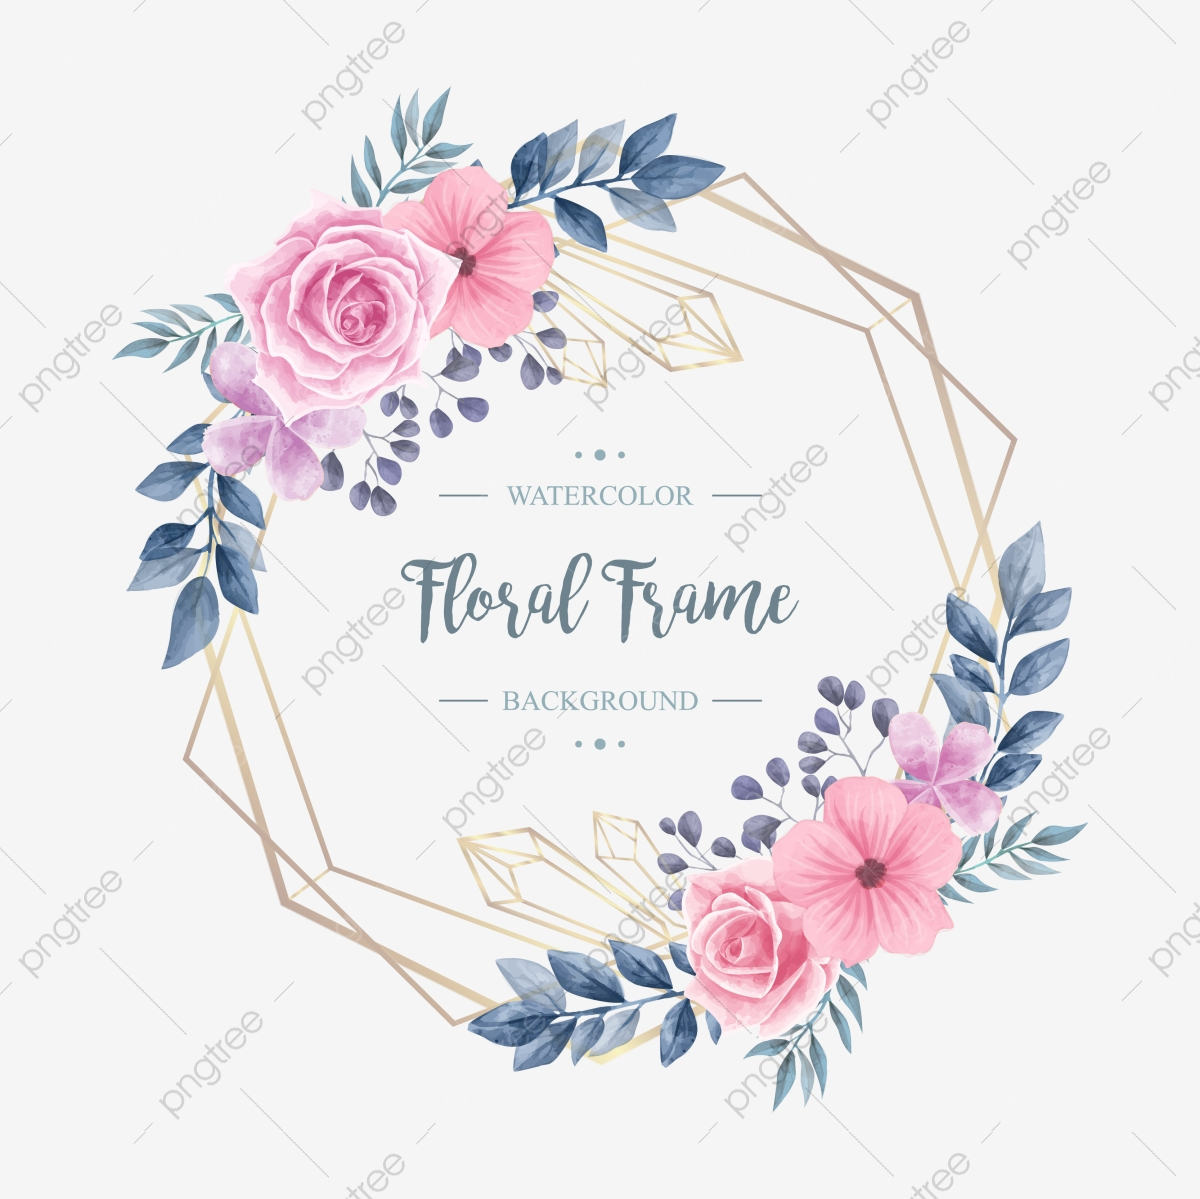 wedding vintage watercolor floral flower frame background pattern flower png and vector with transparent background for free download https pngtree com freepng wedding vintage watercolor floral flower frame 4844492 html